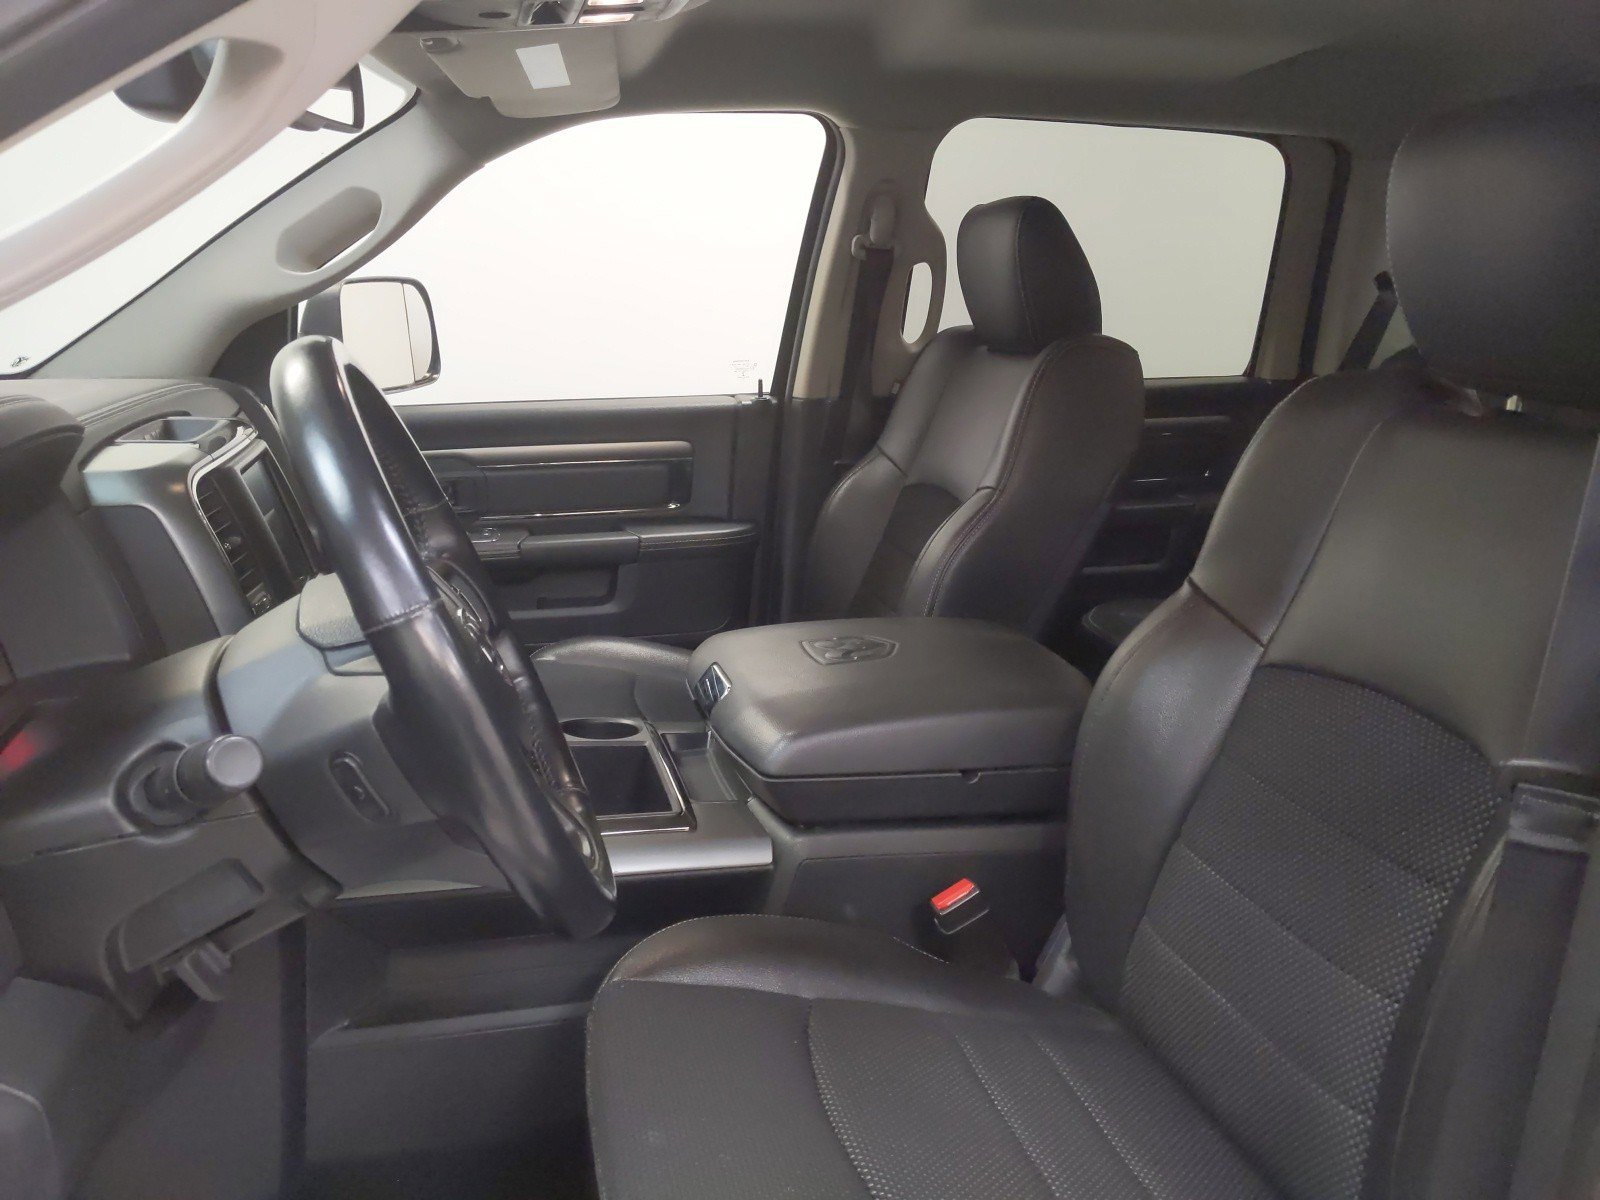 Used 2015 Ram 1500 Sport Crew Cab Pickup for sale in Grand Island NE